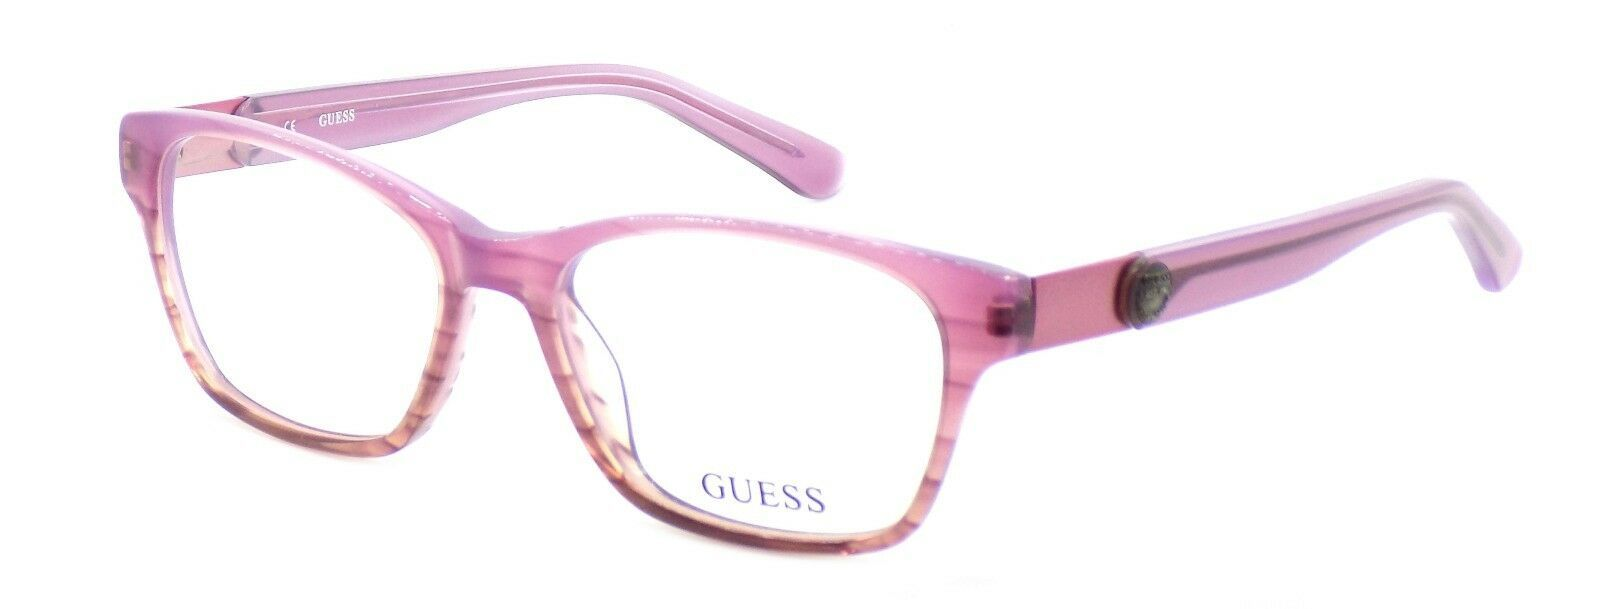 Primary image for GUESS GU2356 RO Women's Eyeglasses Frames Plastic 52-16-140 Rose Pink + Case